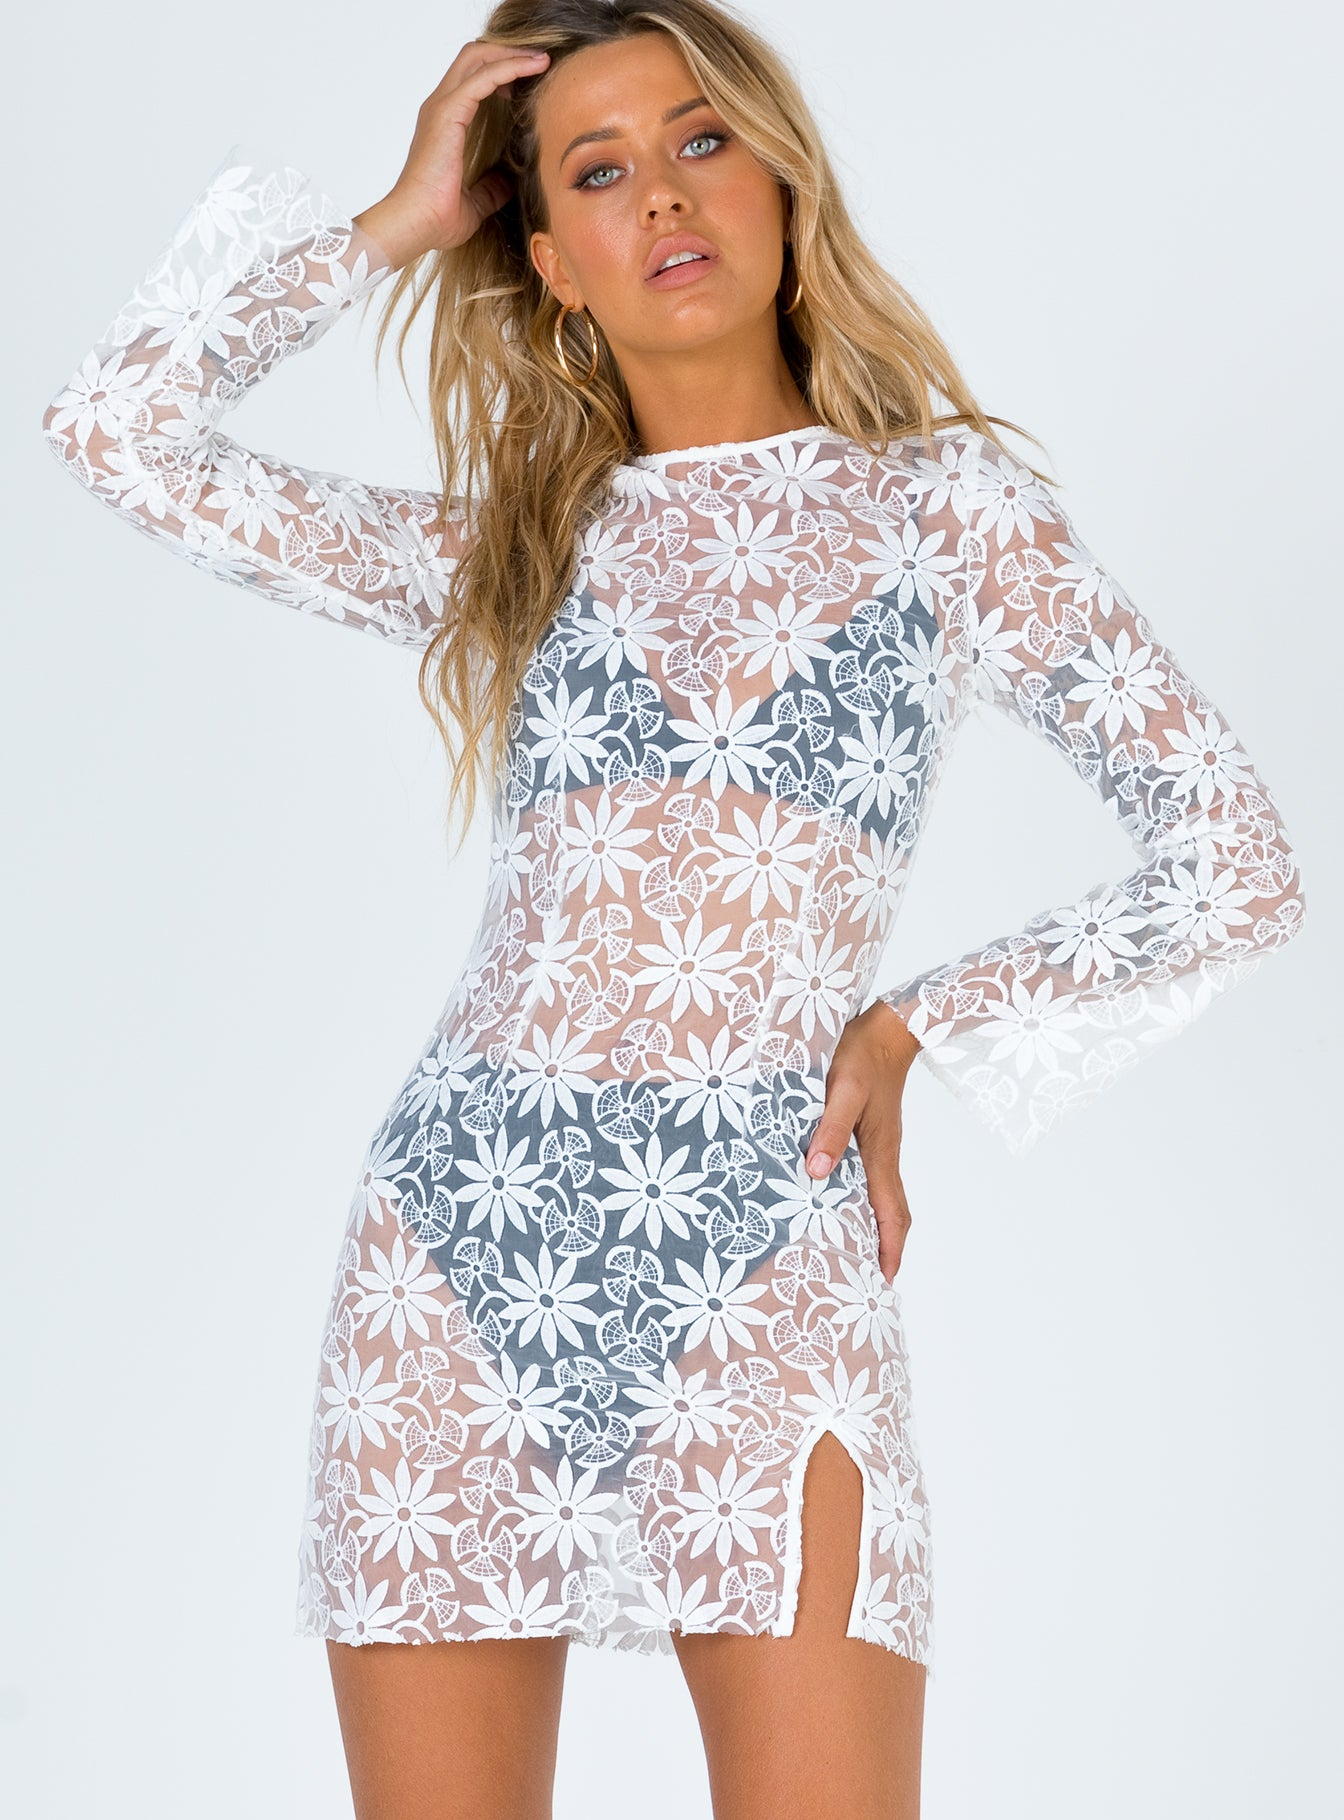 Dancing Queen White Lace Mini Dress